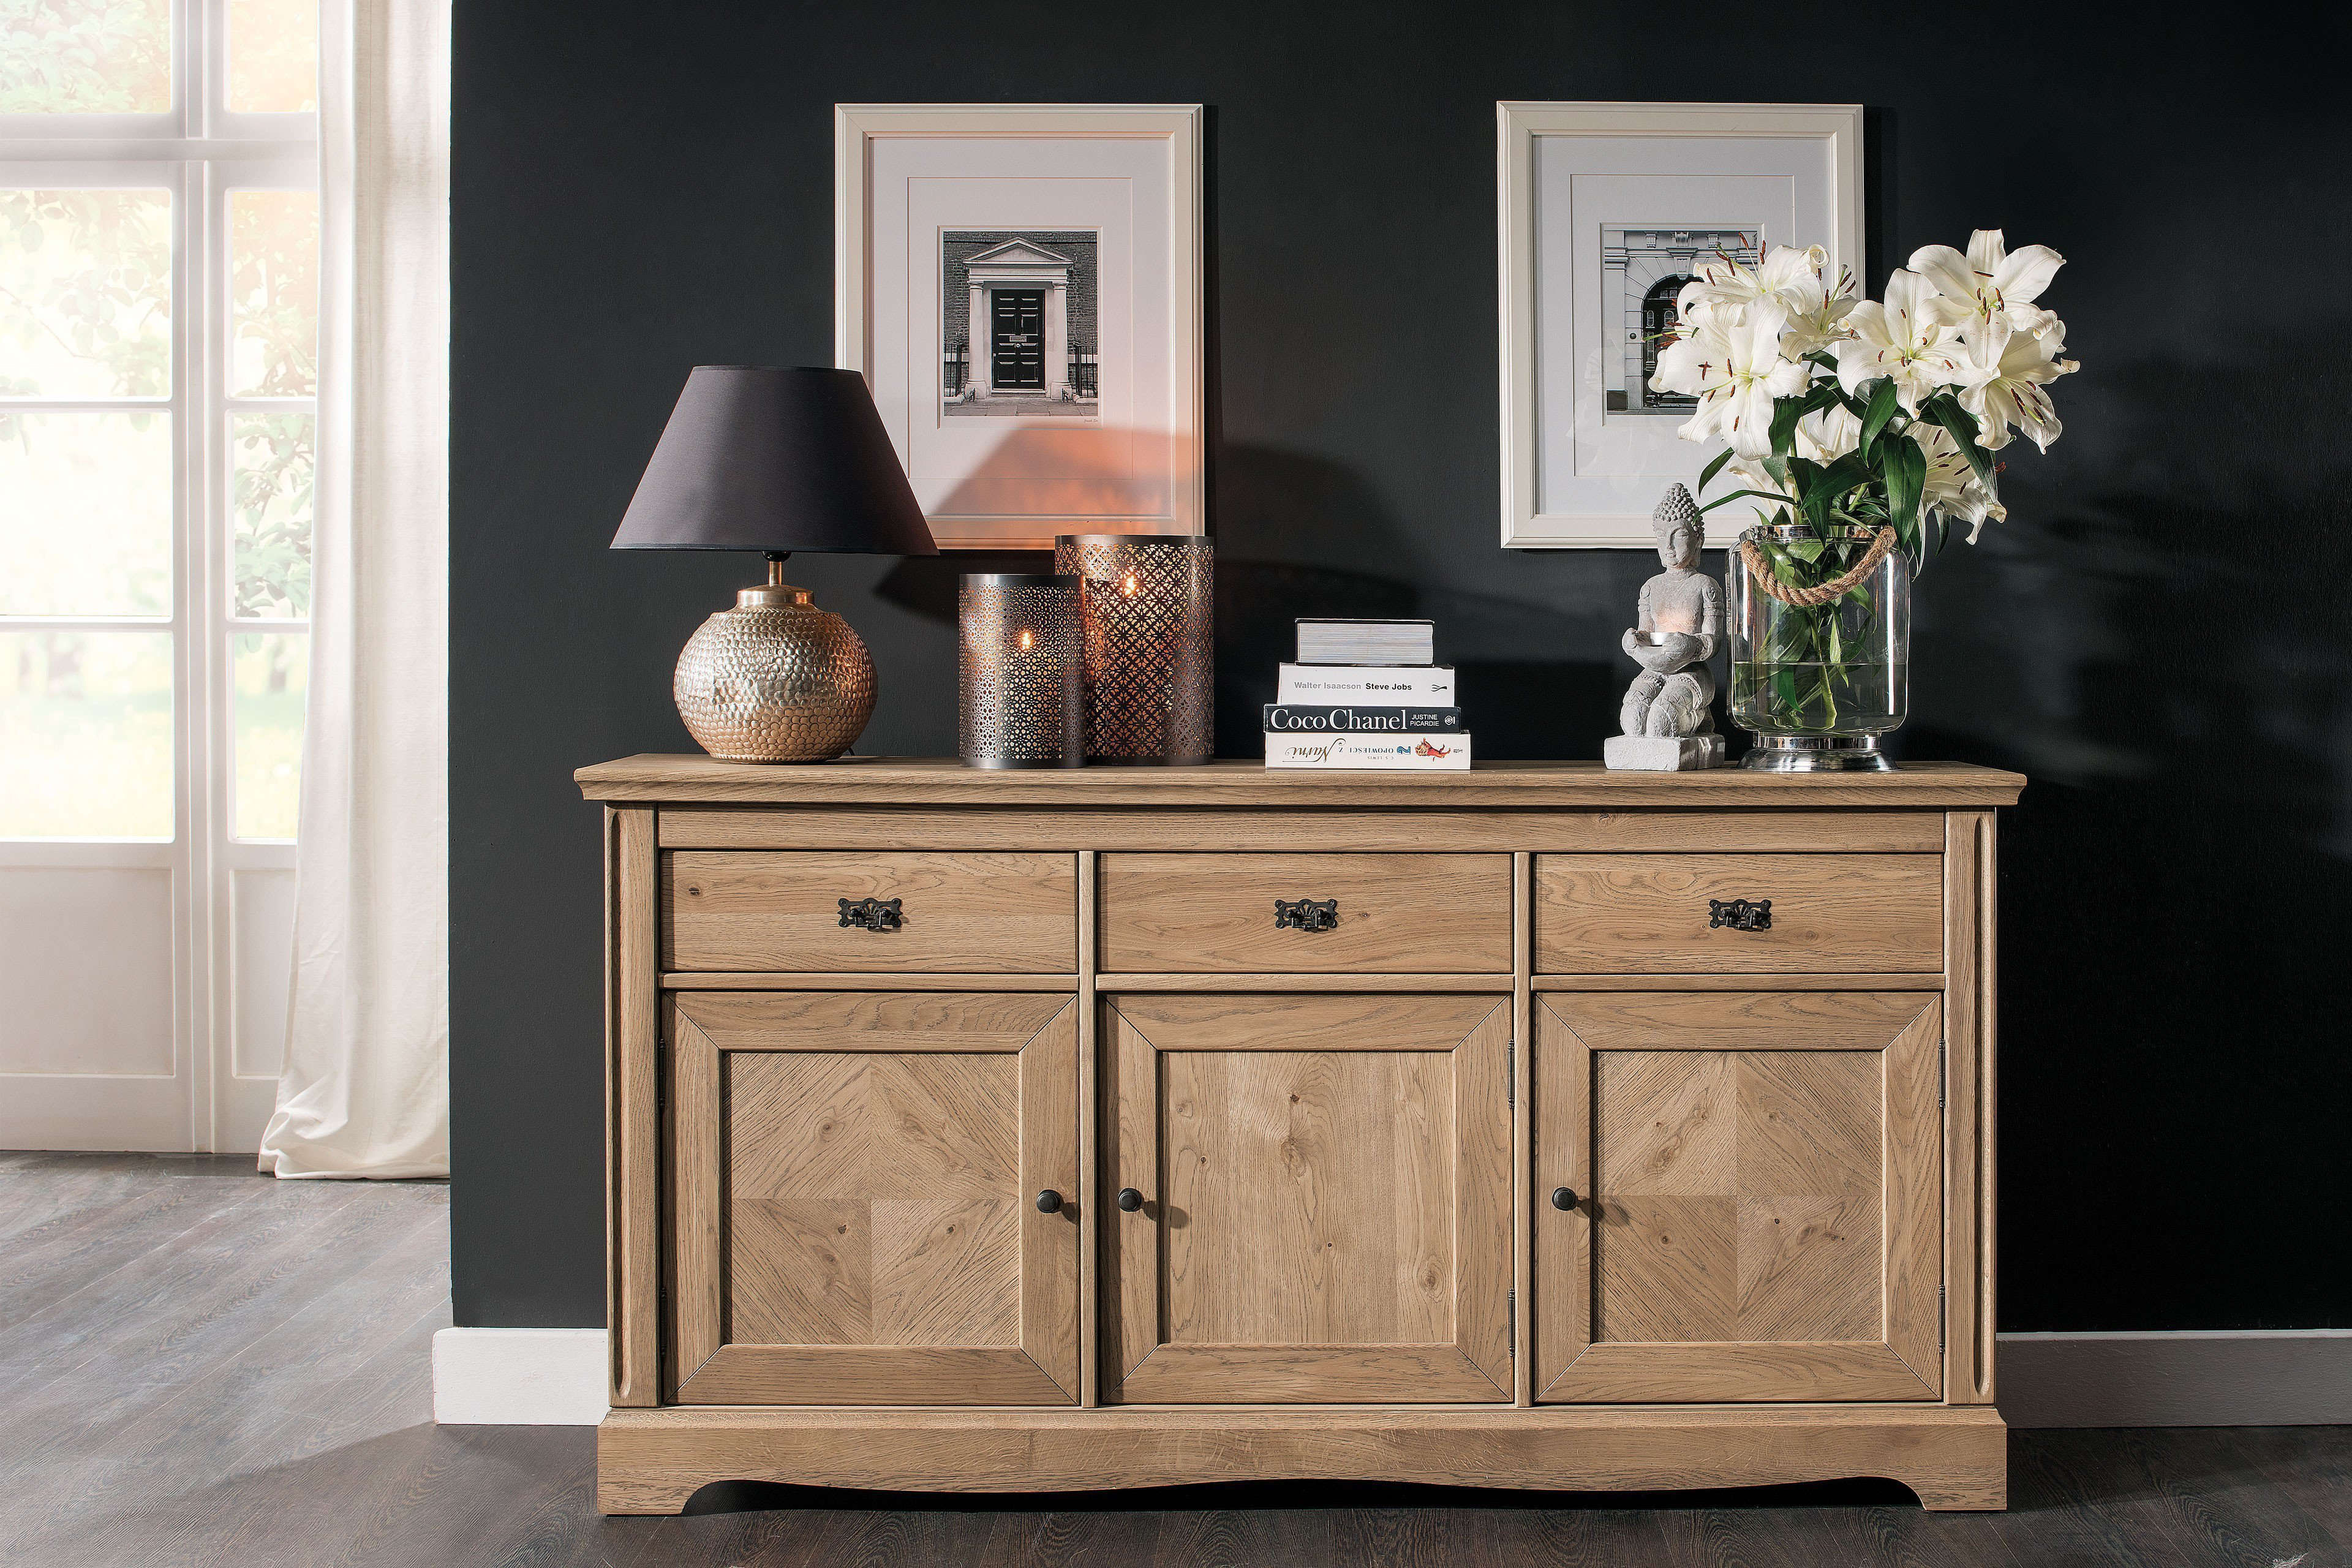 online mbelkauf great kauf auf rechnung als neukunde moderne deko trends online bestellen fa r. Black Bedroom Furniture Sets. Home Design Ideas